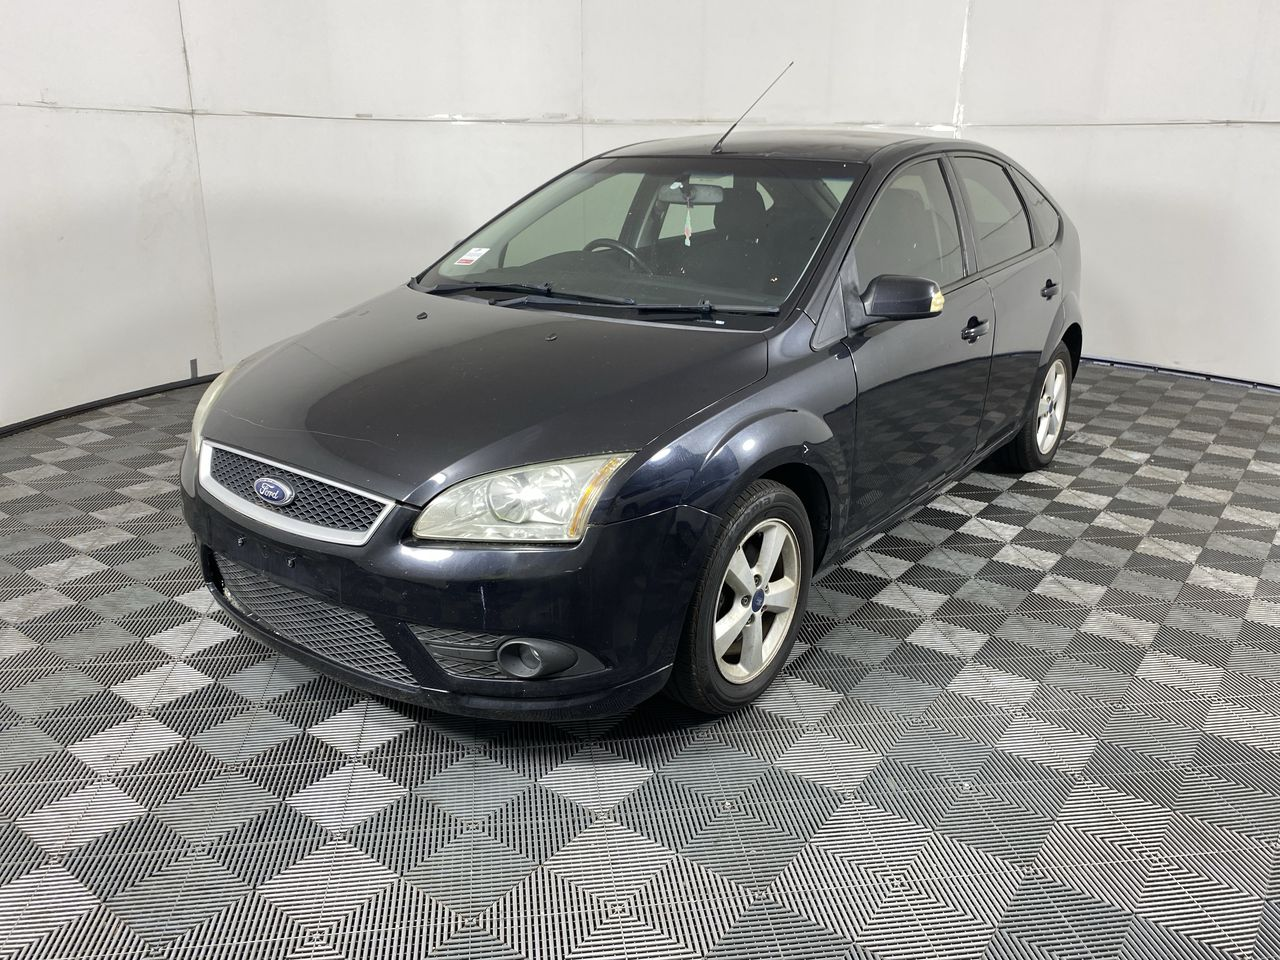 2008 Ford Focus LX Automatic Hatchback (WOVR)